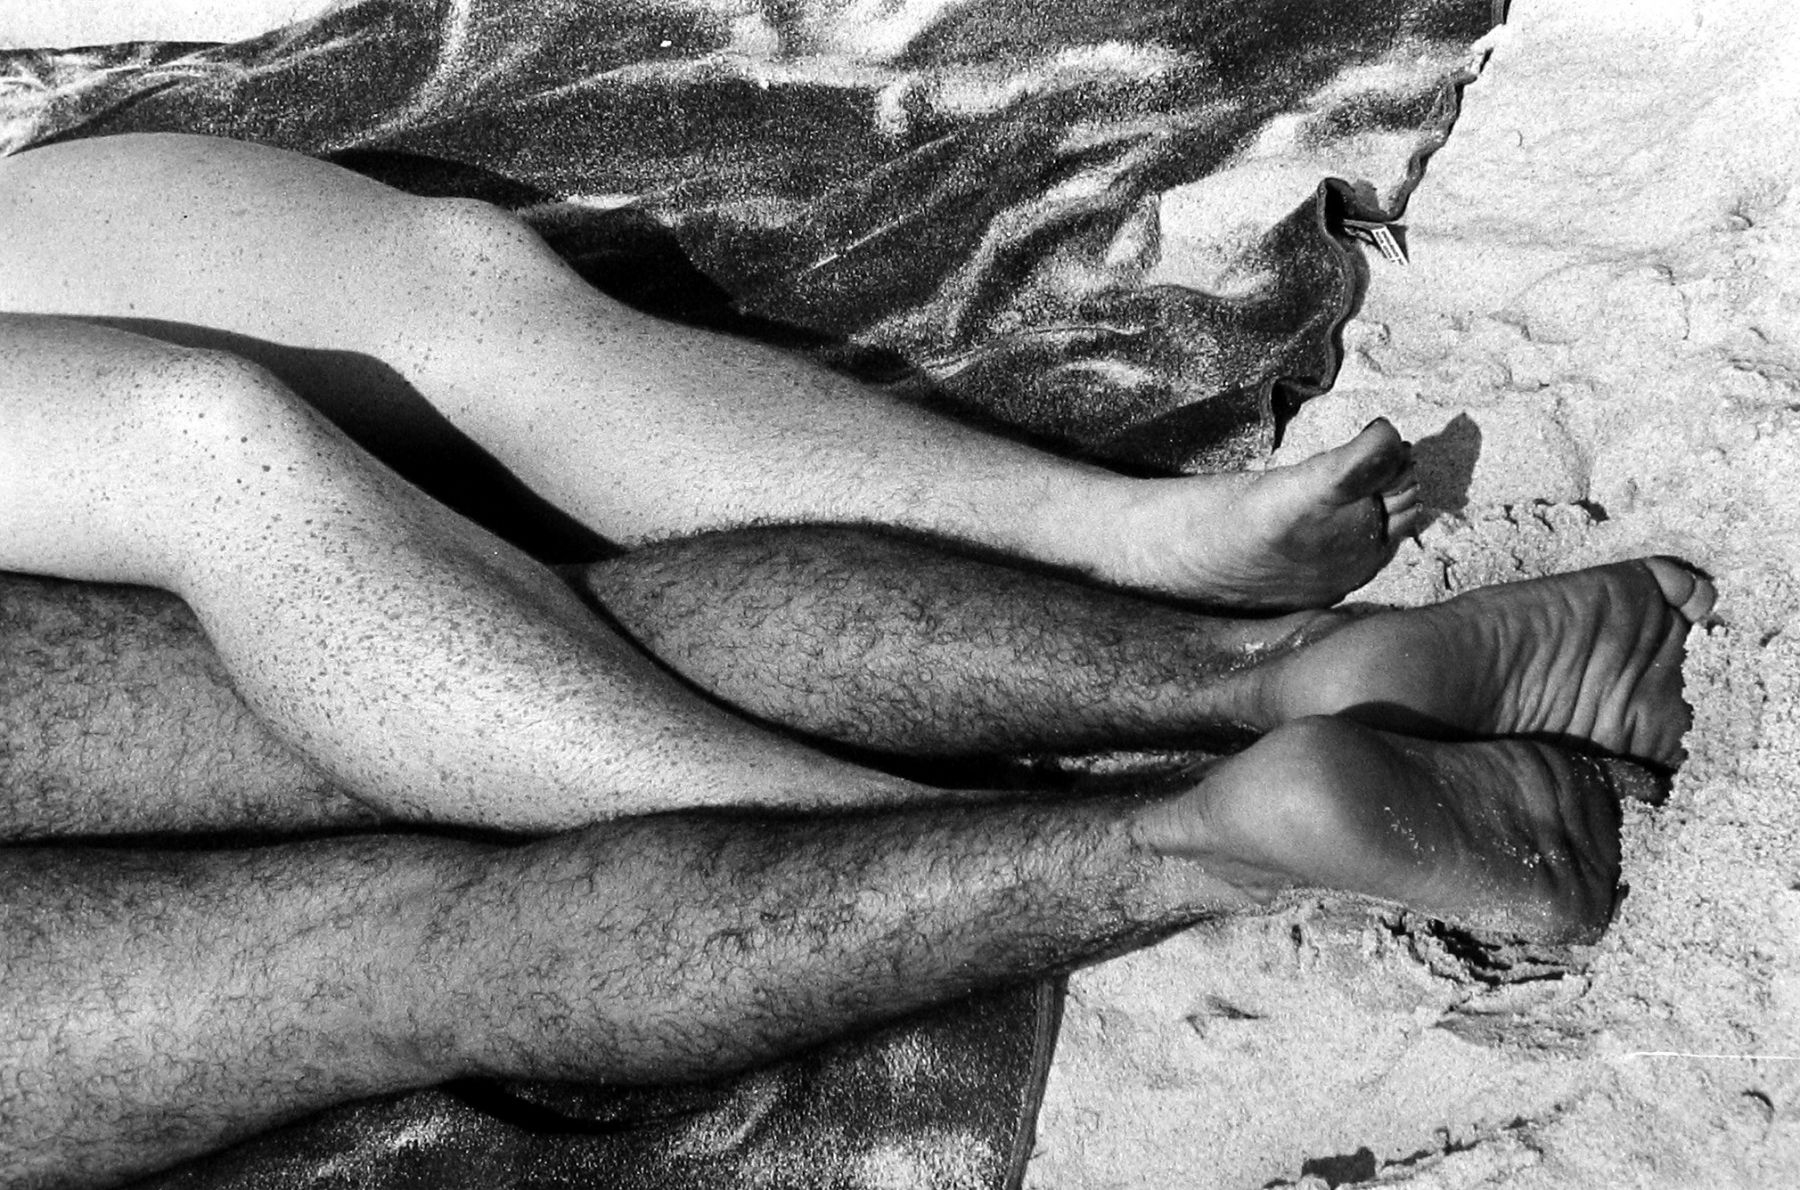 Tosh Matsumoto - Untitled (legs entwined on sand), c.1950 - Howard Greenberg Gallery - 2018